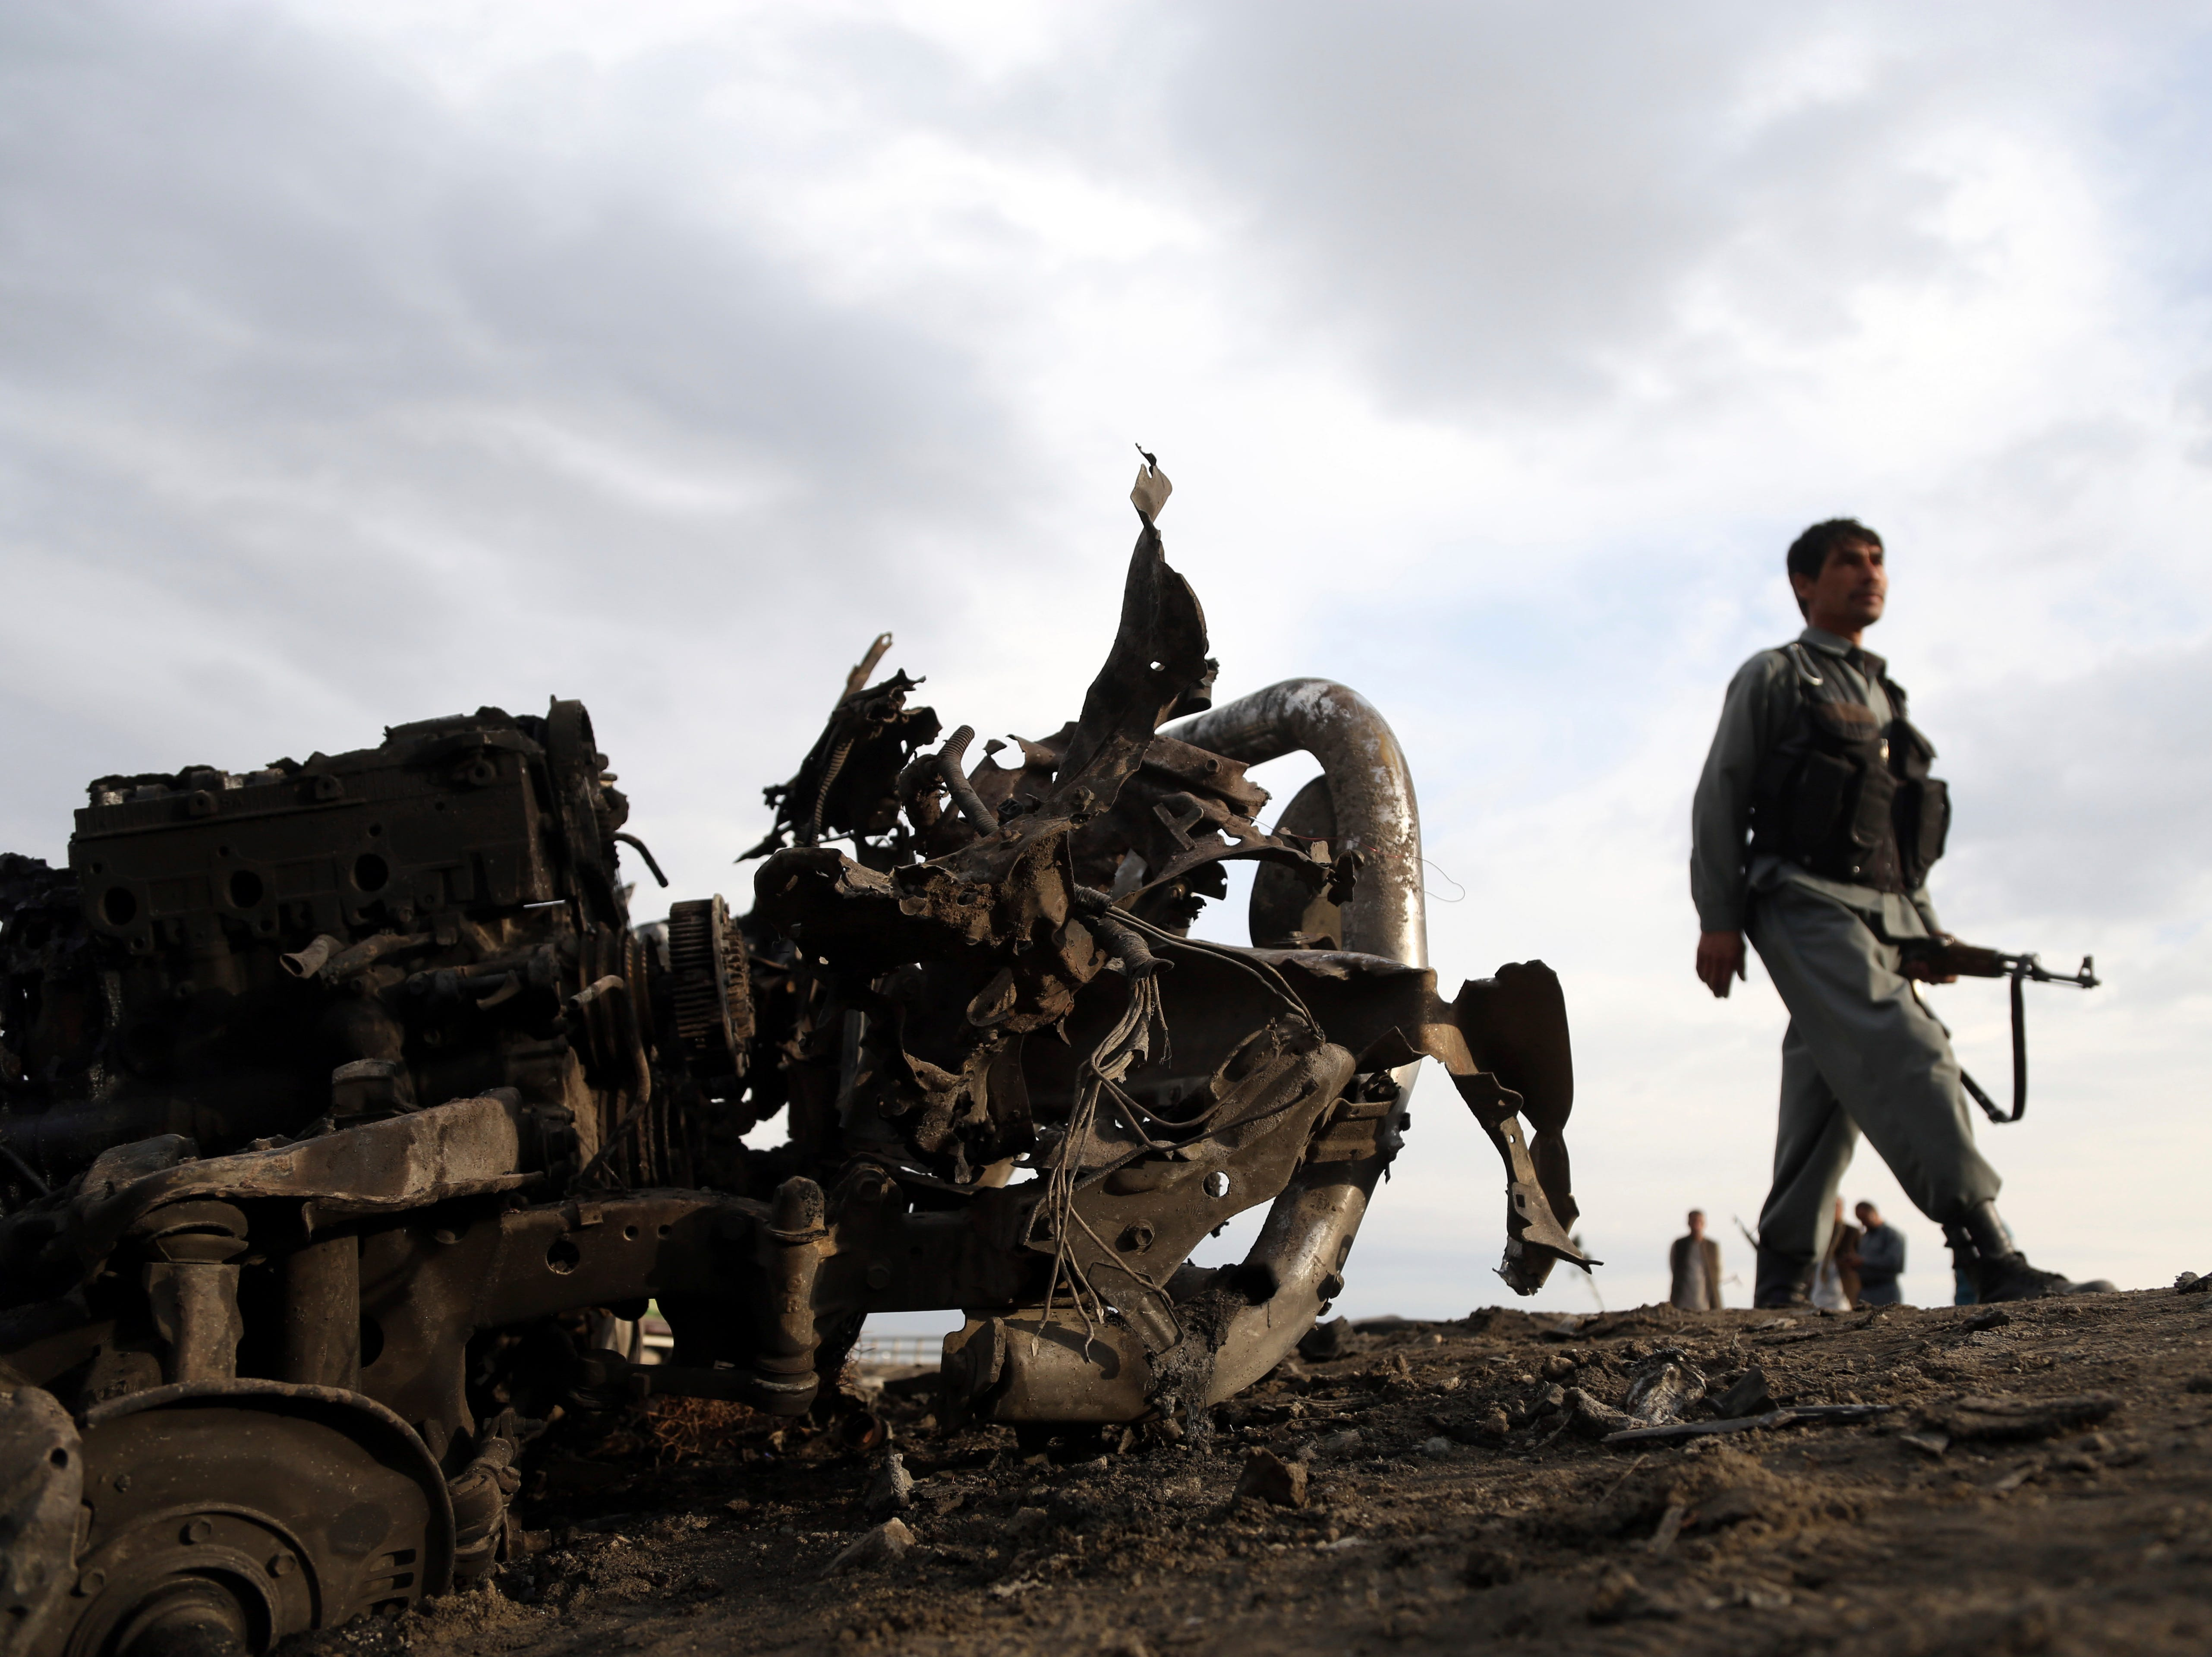 Afghan security forces gather at the site of Monday's attack near the Bagram Air Base, north of Kabul, Afghanistan, Tuesday, April 9, 2019. Three American service members were killed when their convoy hit a roadside bomb on Monday near the main U.S. base in Afghanistan, the U.S. forces said. The Taliban claimed responsibility for the attack.